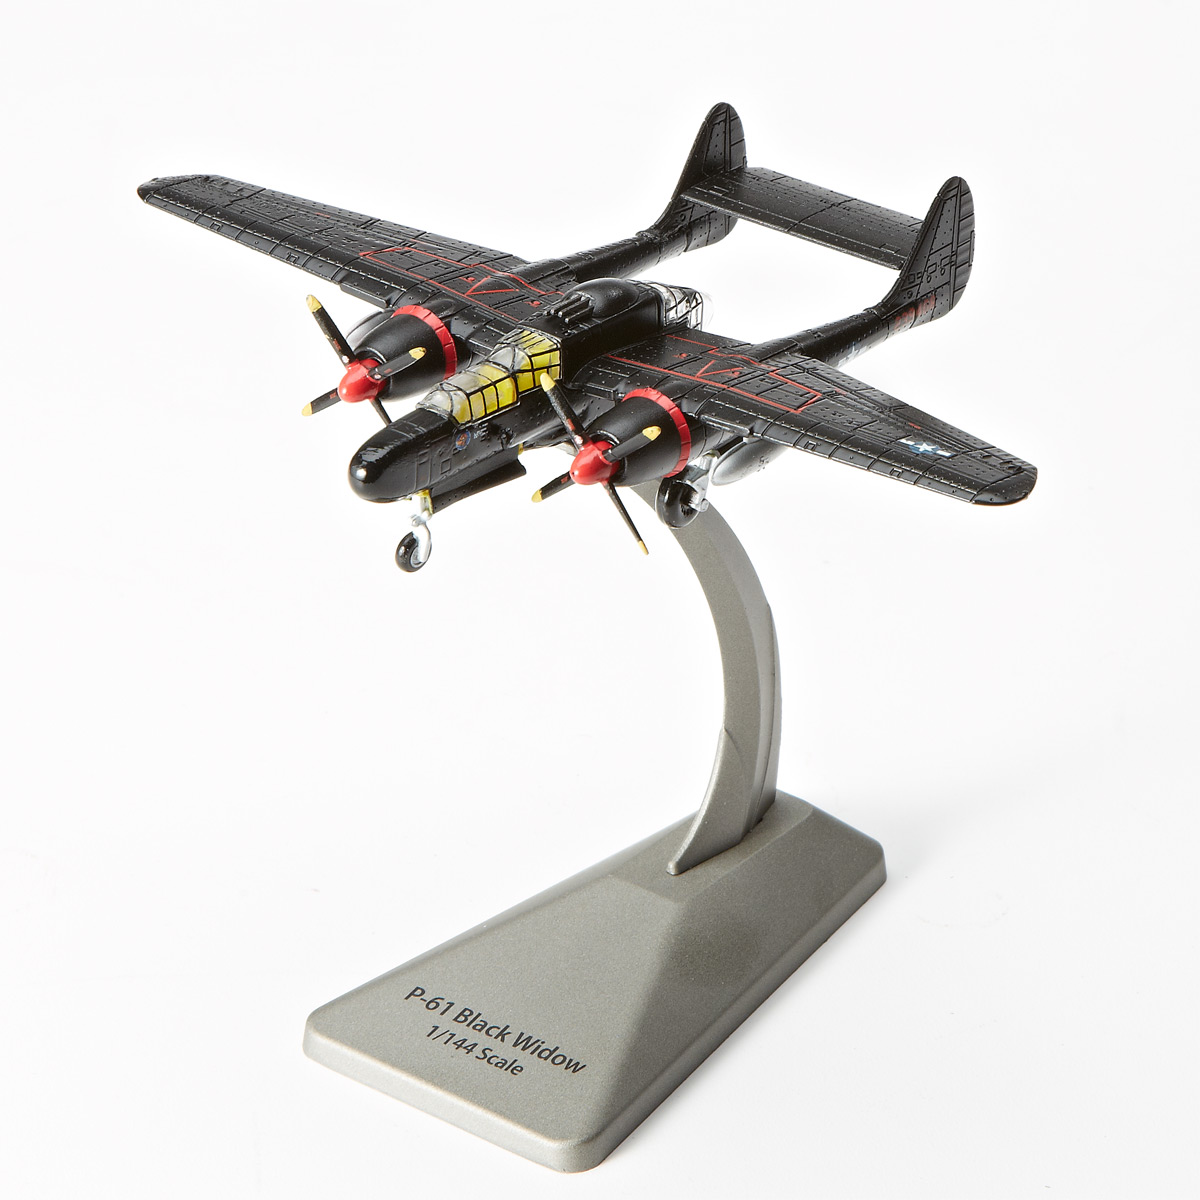 N Scale - Smithsonian Collection - 0140 - Vehicle, Aircraft, P-61 Black Widow - United States Air Force